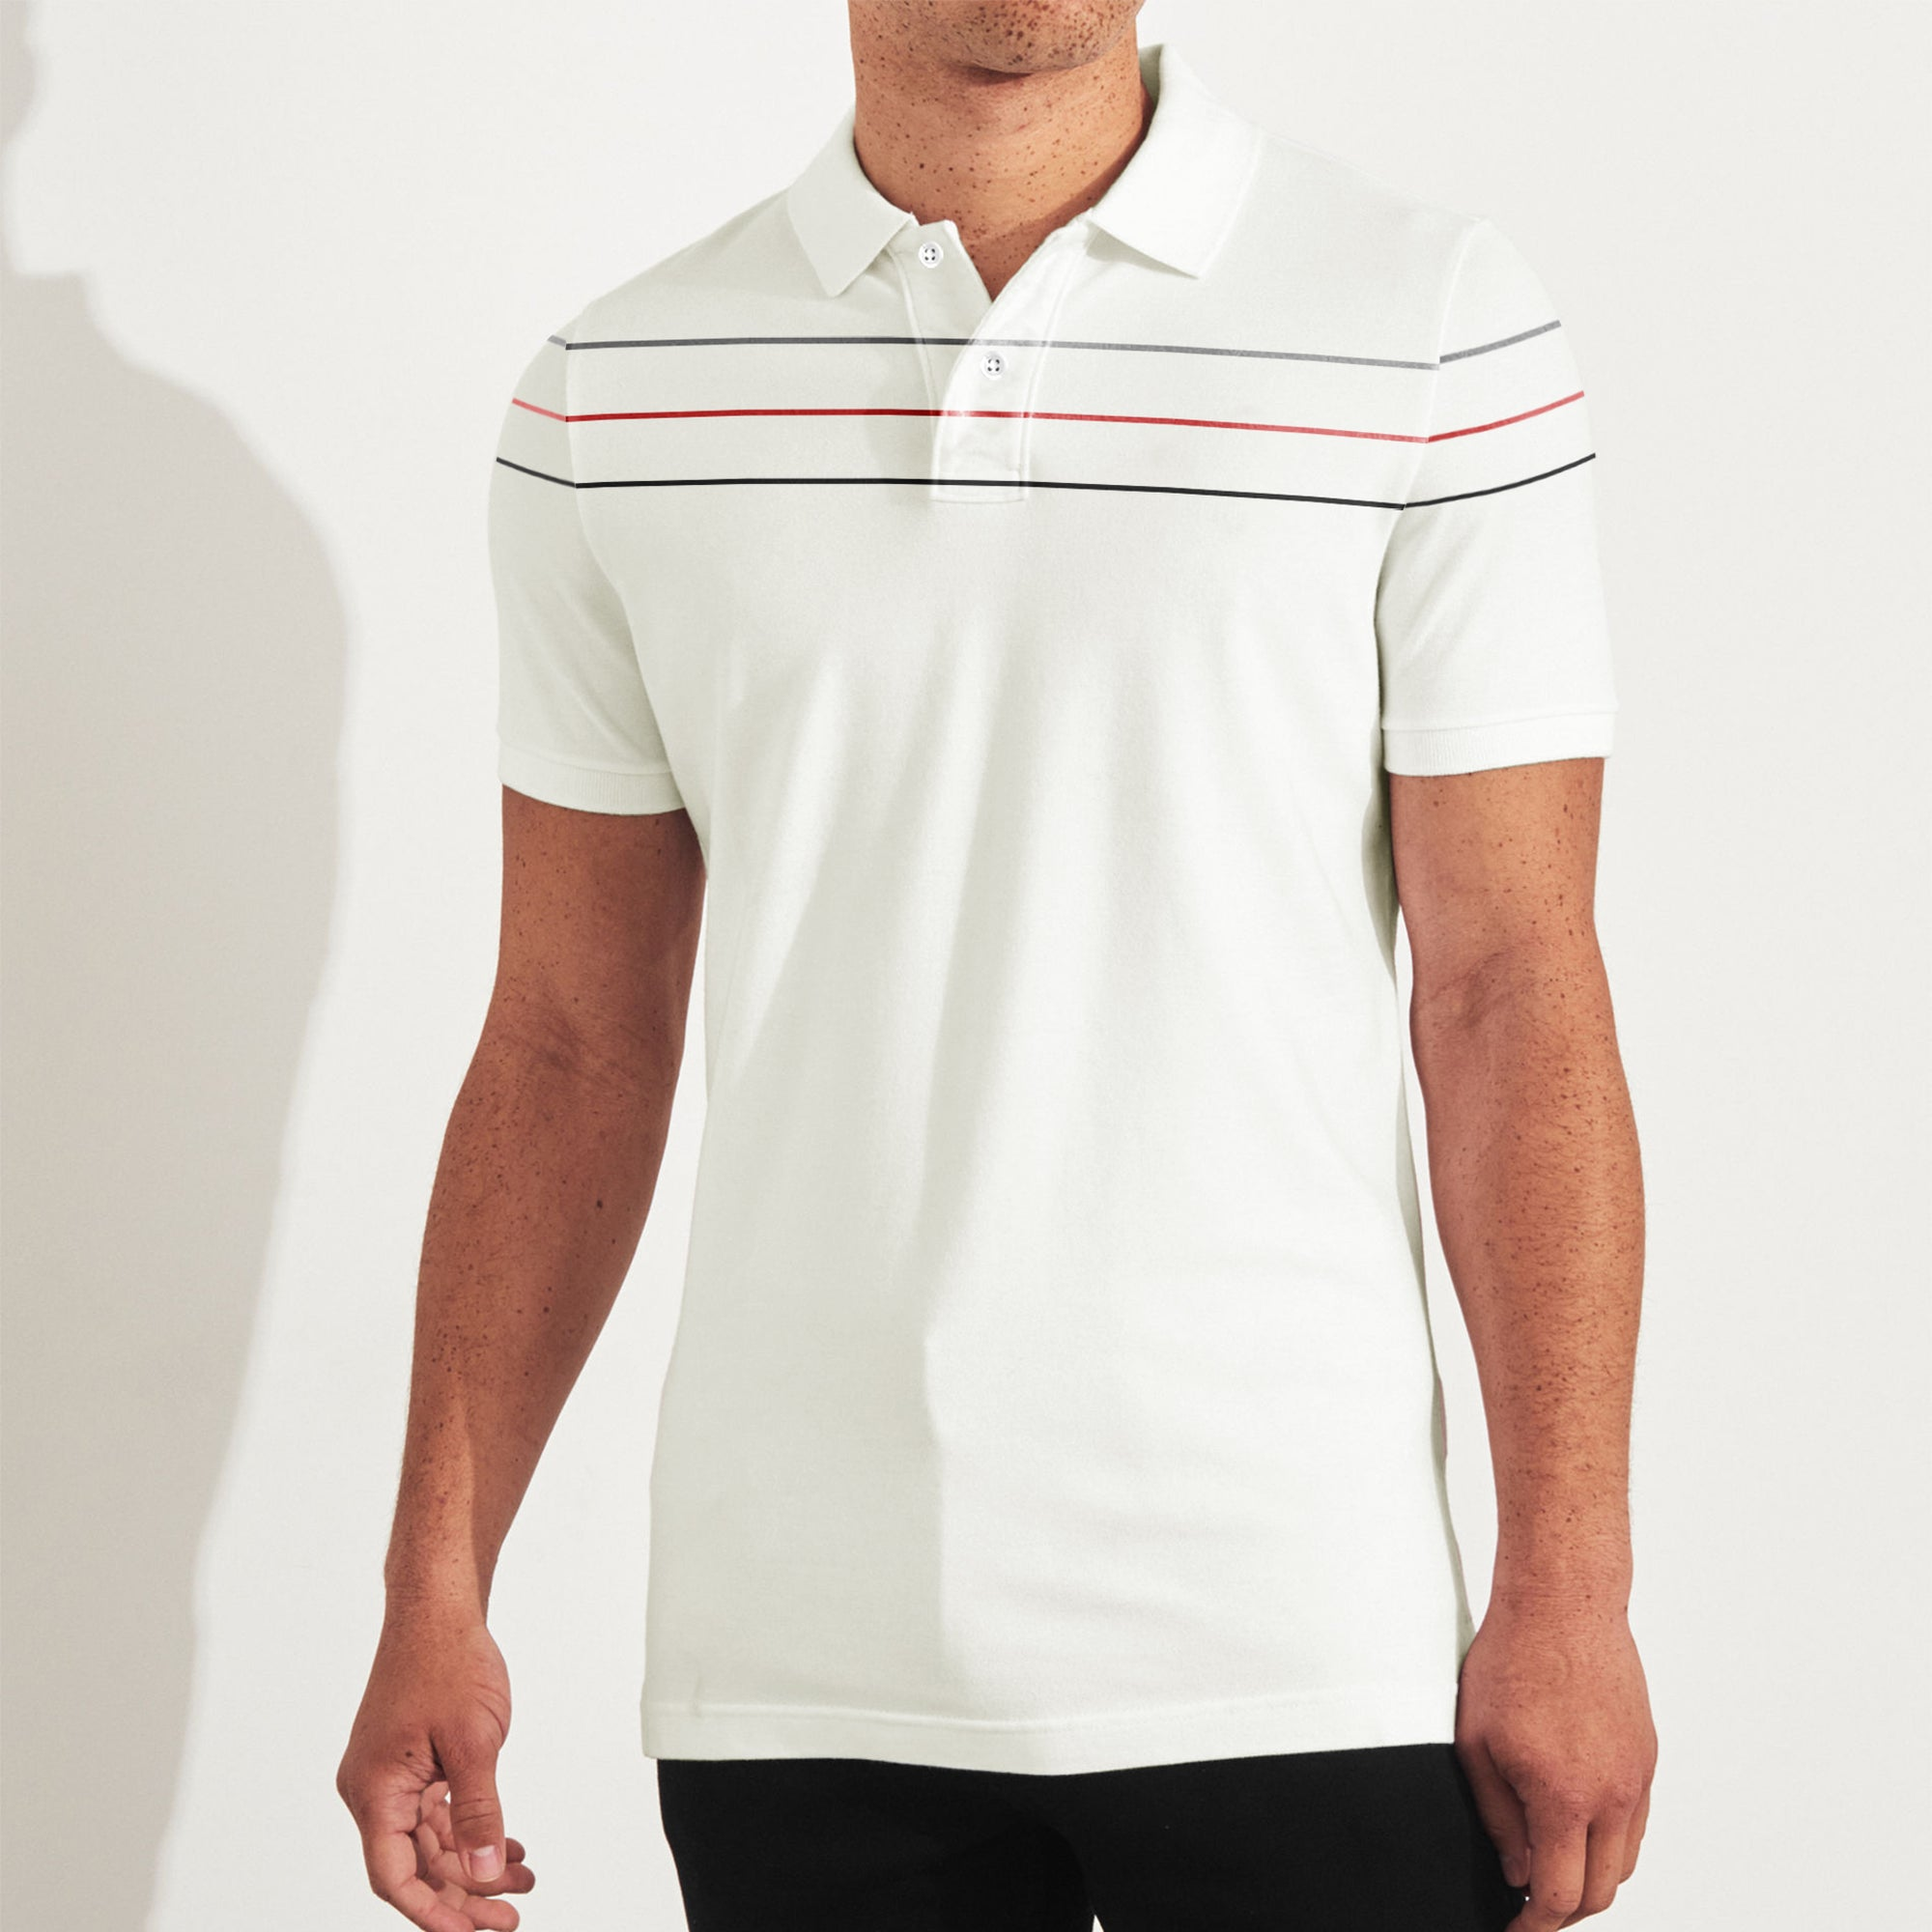 The Modern Short Sleeve P.Q Polo Shirt For Men-Off White & Stripe-BE8389